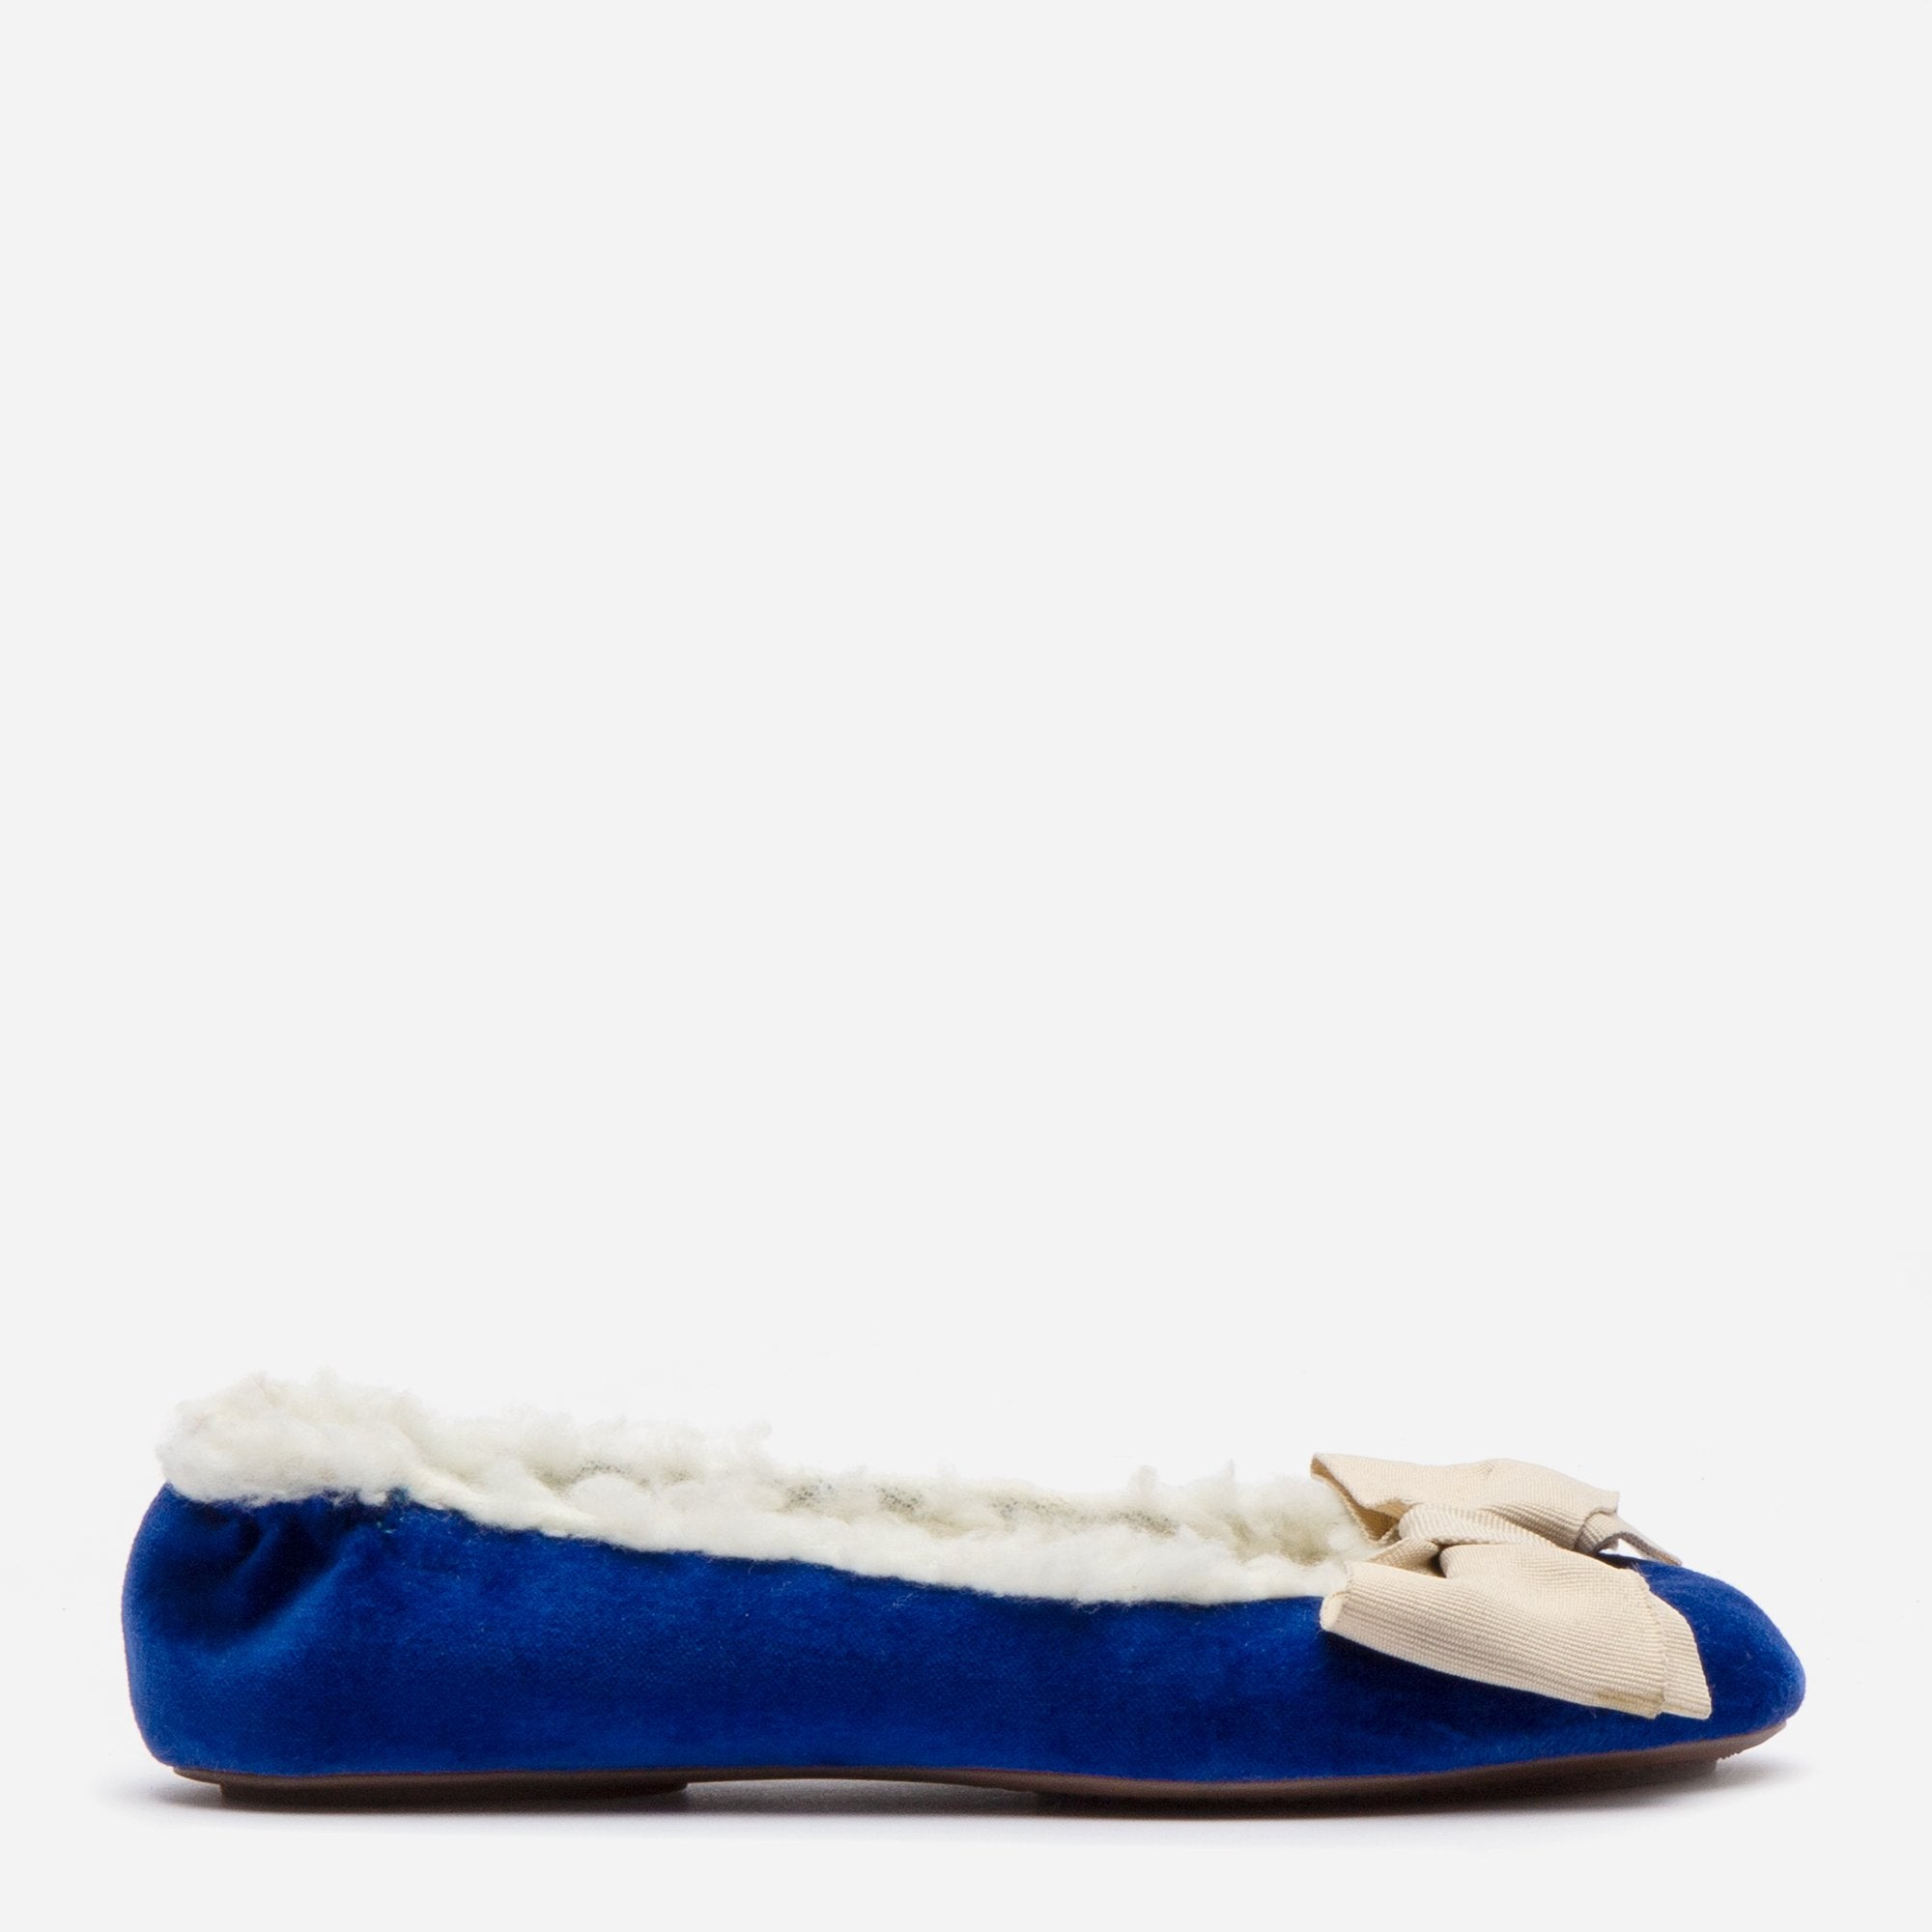 Velvet Bow Slipper Faux Shearling Royal - Frances Valentine